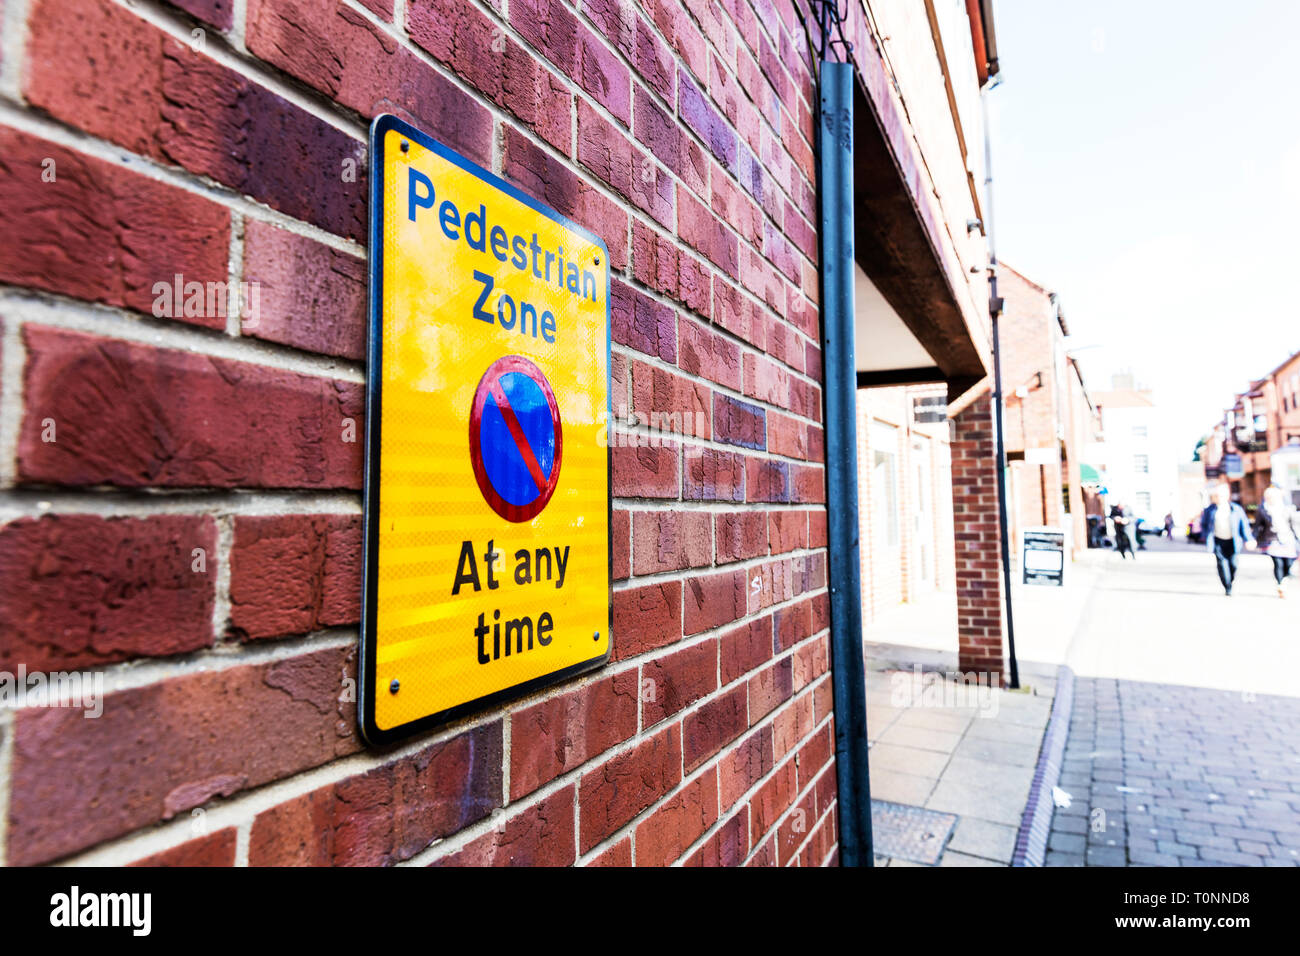 Pedestrian Zone sign, No parking sign, Pedestrian Zone parking sign, Pedestrian Zone parking restriction, UK road sign, road signs, parking sign, UK - Stock Image